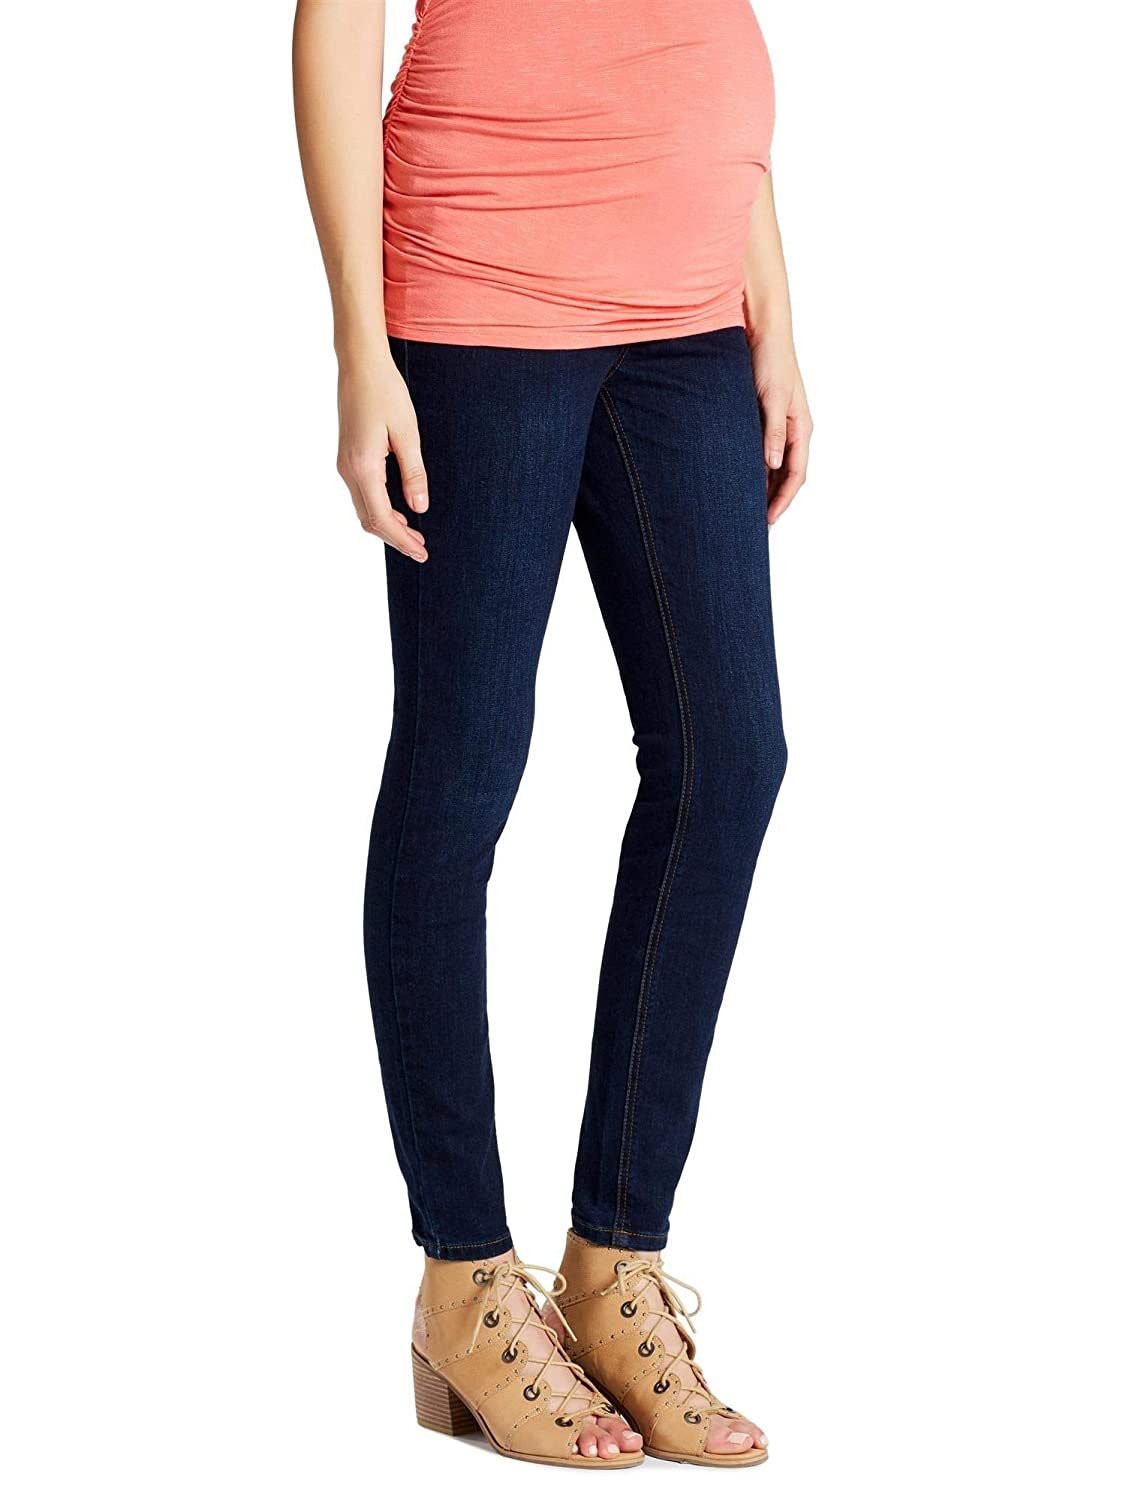 1640ffc41662c Jessica Simpson Secret Fit Belly Skinny Leg Maternity Jeans at Amazon  Women's Clothing store: